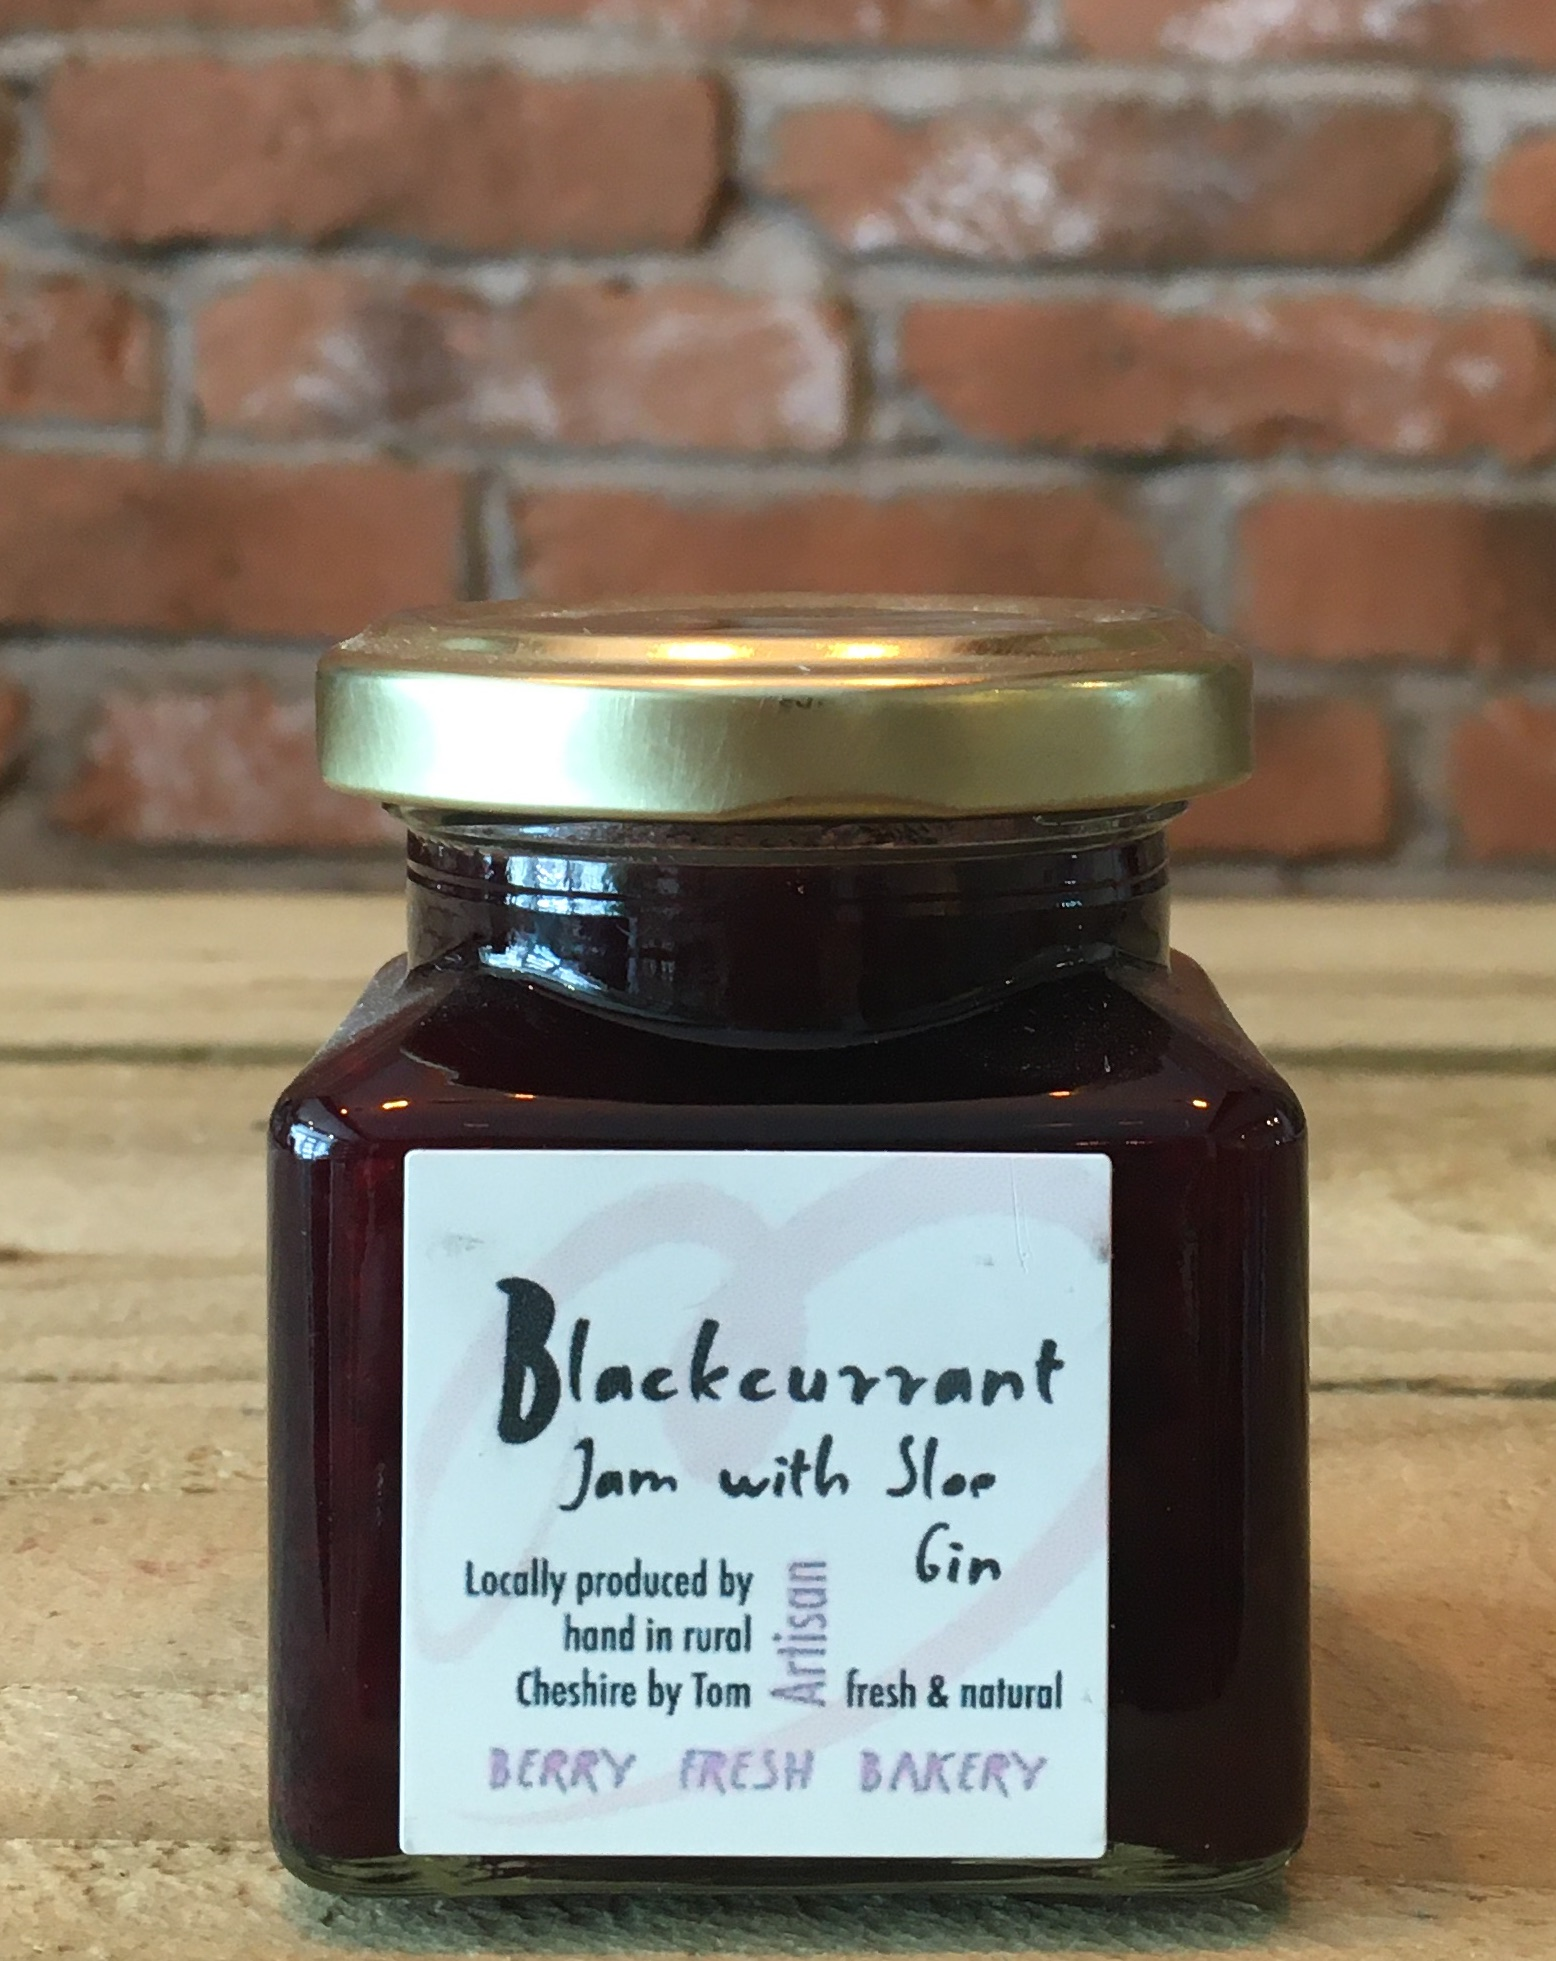 Jam - Blackcurrant with Sloe Gin - 120g